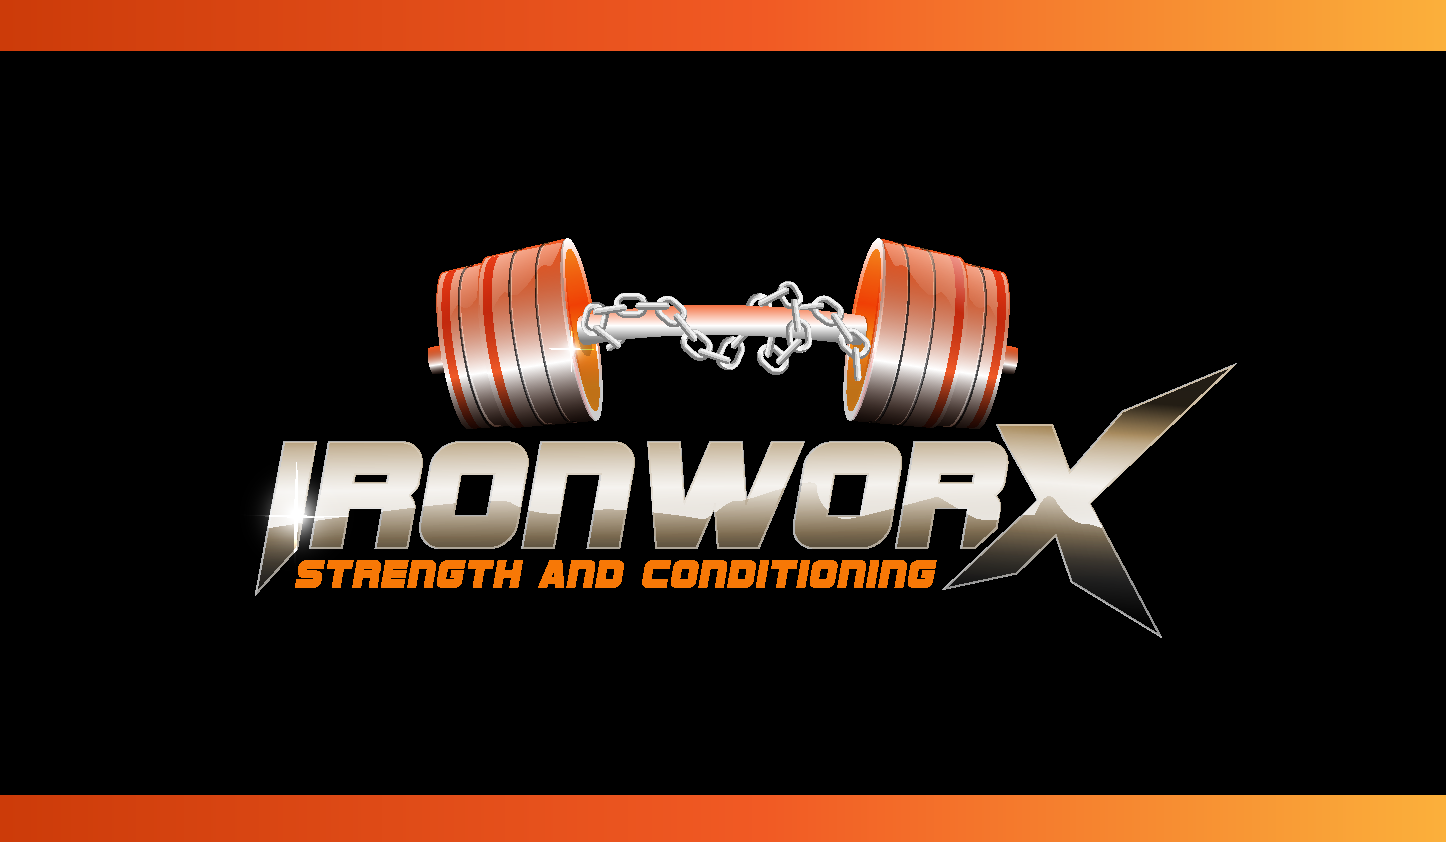 Iron Worx Strength and Conditioning needs a new logo